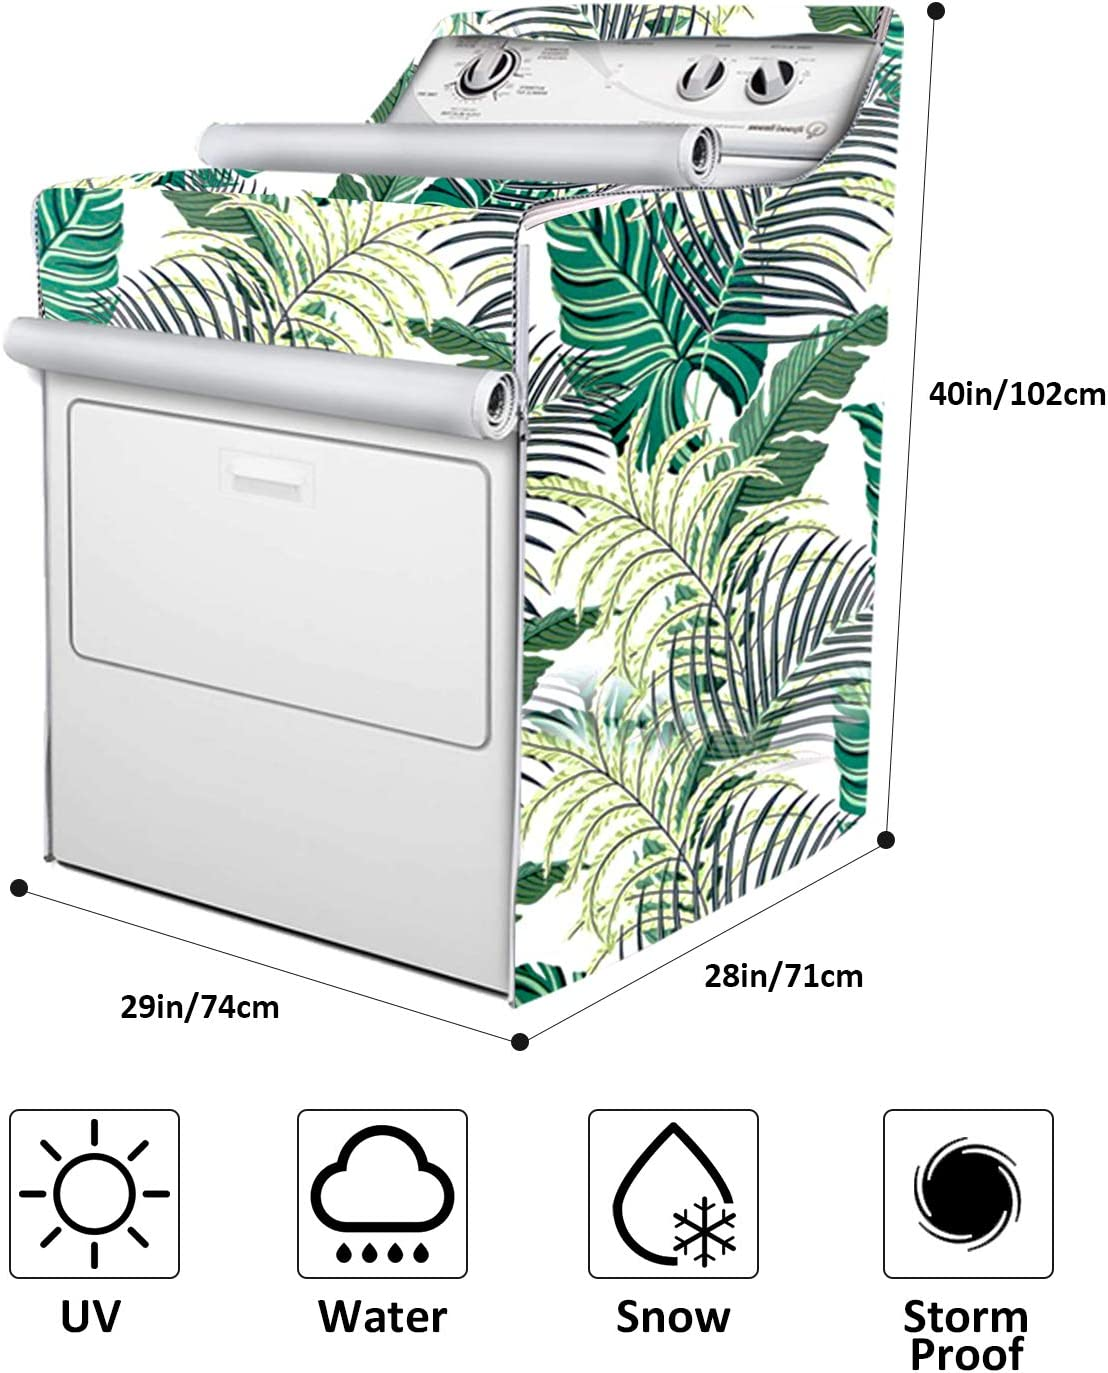 Washer//Dryer Cover,Fit for Outdoor Top Load and Front Load Machine,Zipper Design for Easy Use,Waterproof Dustproof Moderately Sunscreen Green Forest